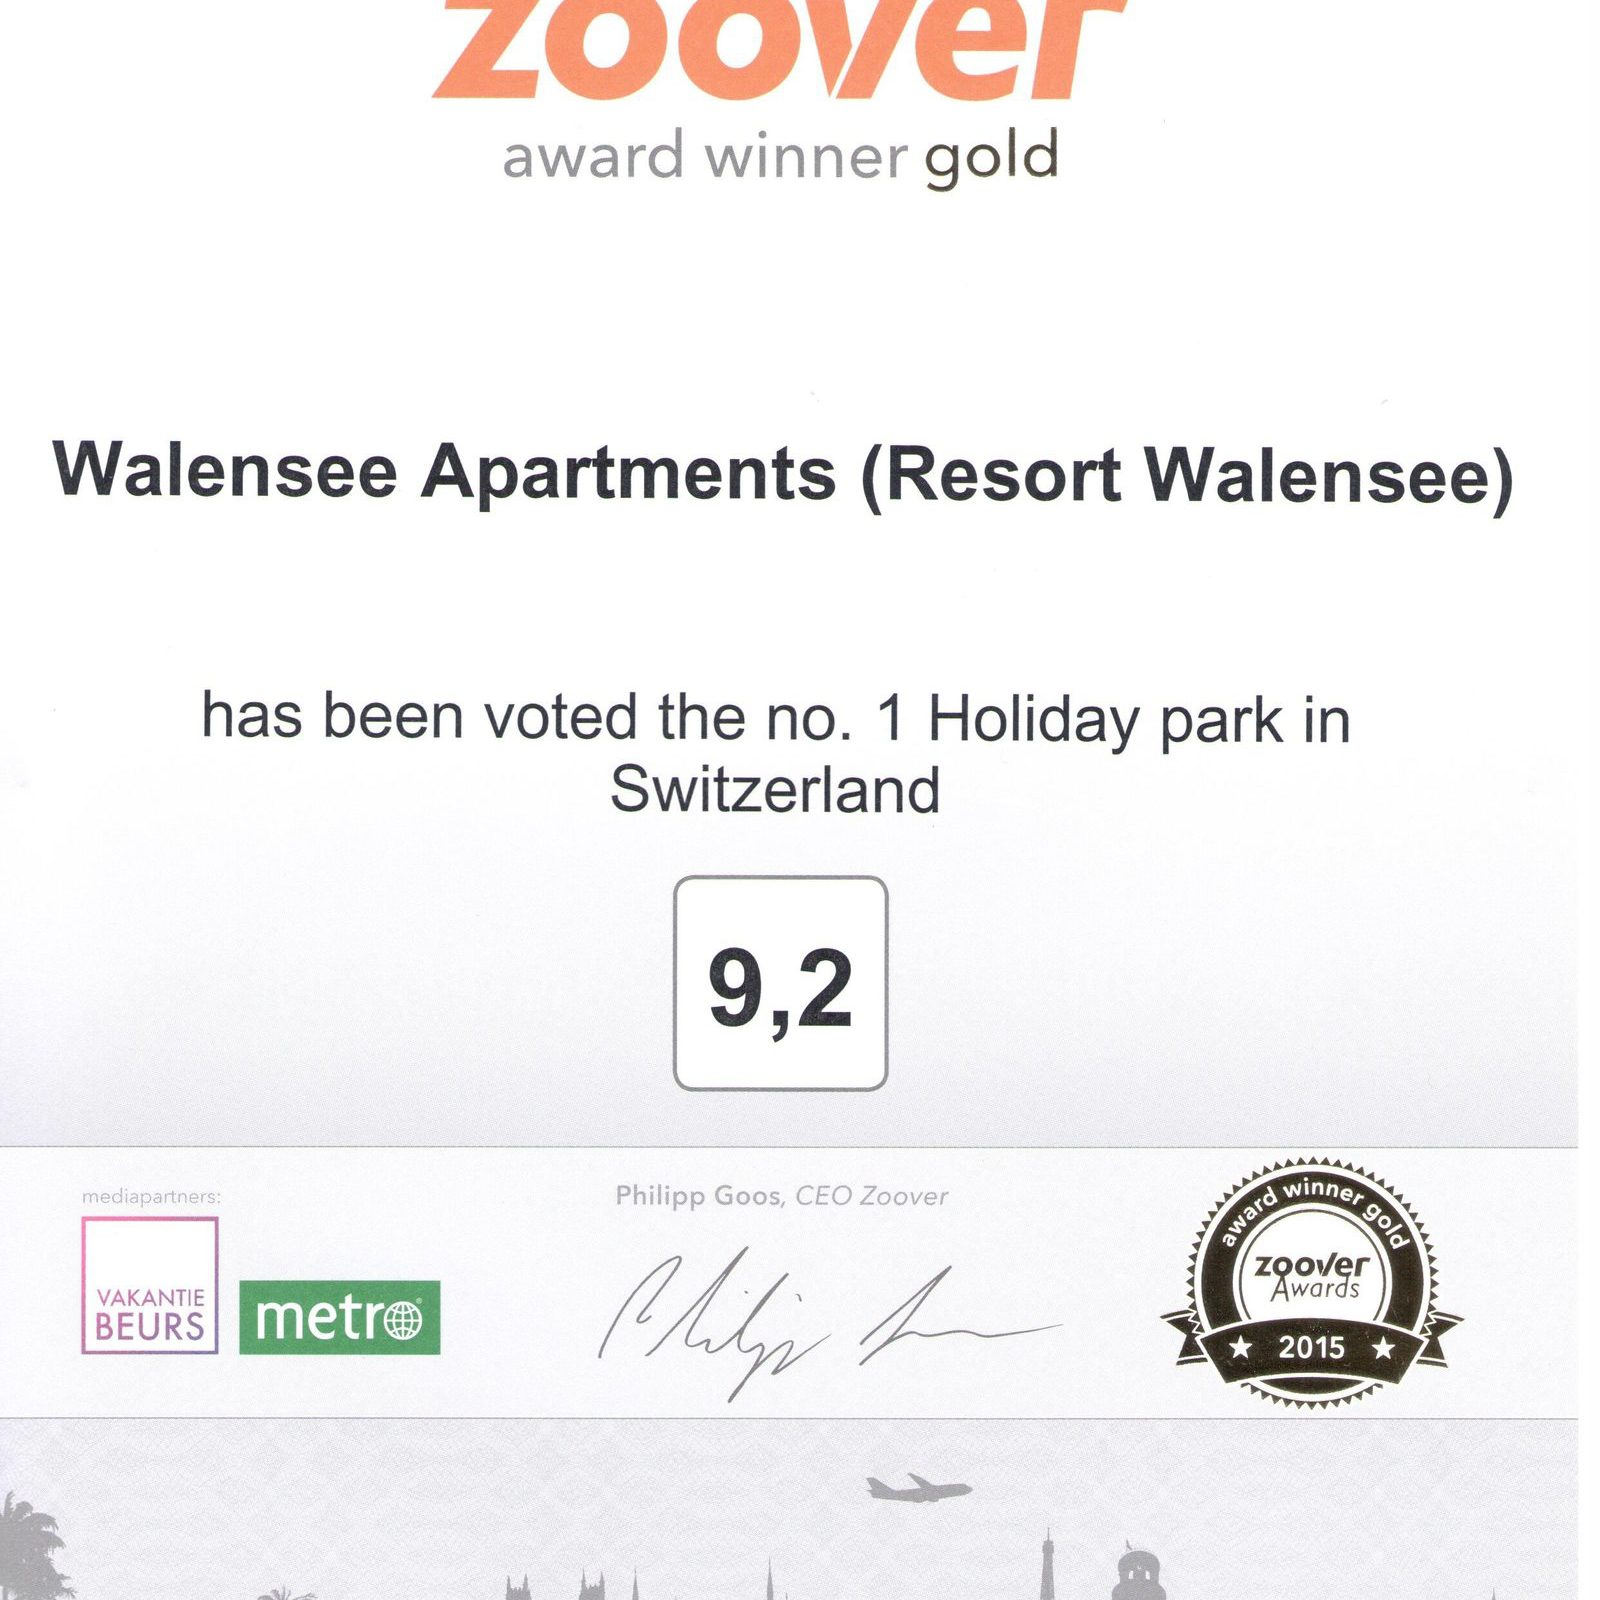 Walensee Apartments wins Zoover award 2015 for Resort Walensee Switzerland